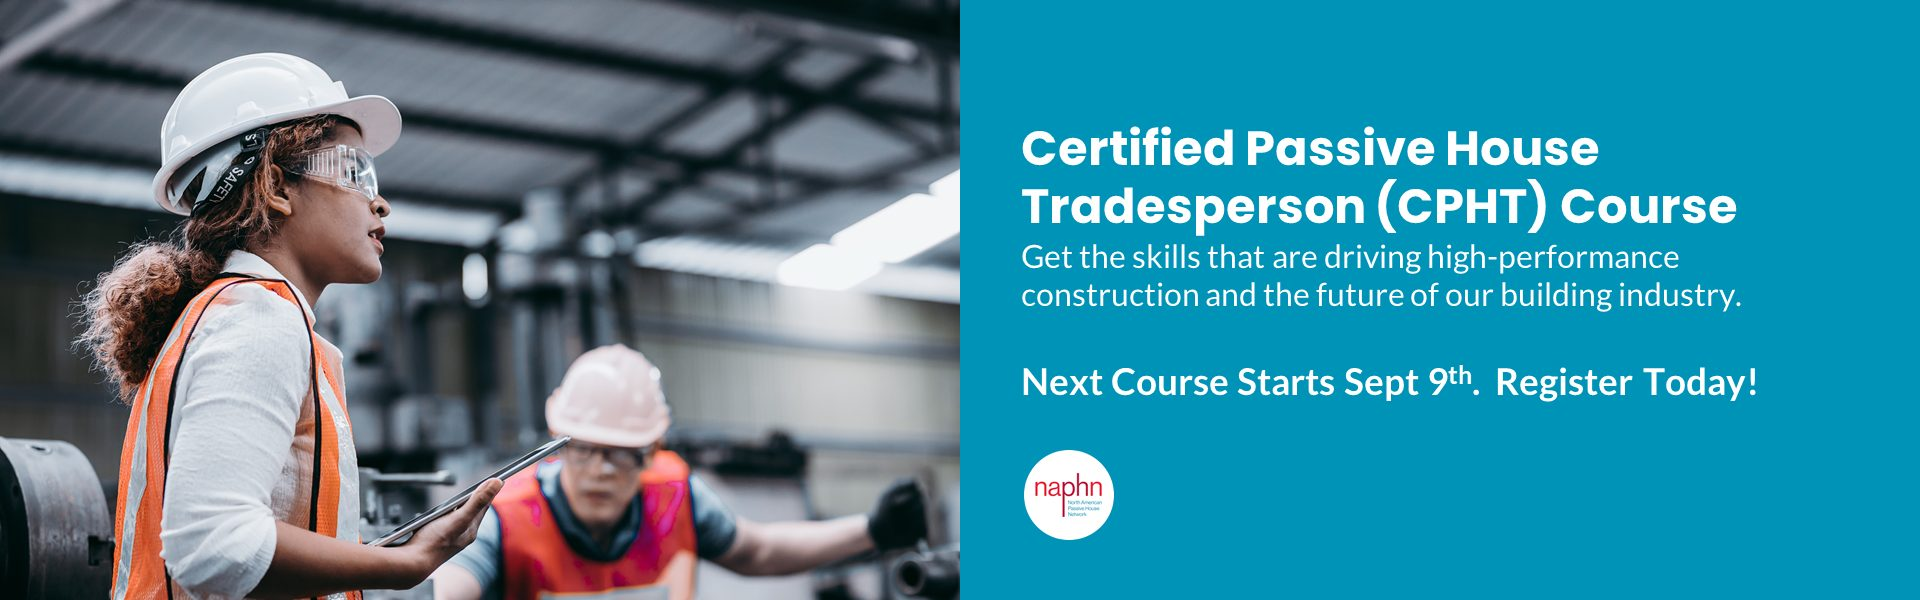 Certified Passive House Tradesperson - CPHT - Course